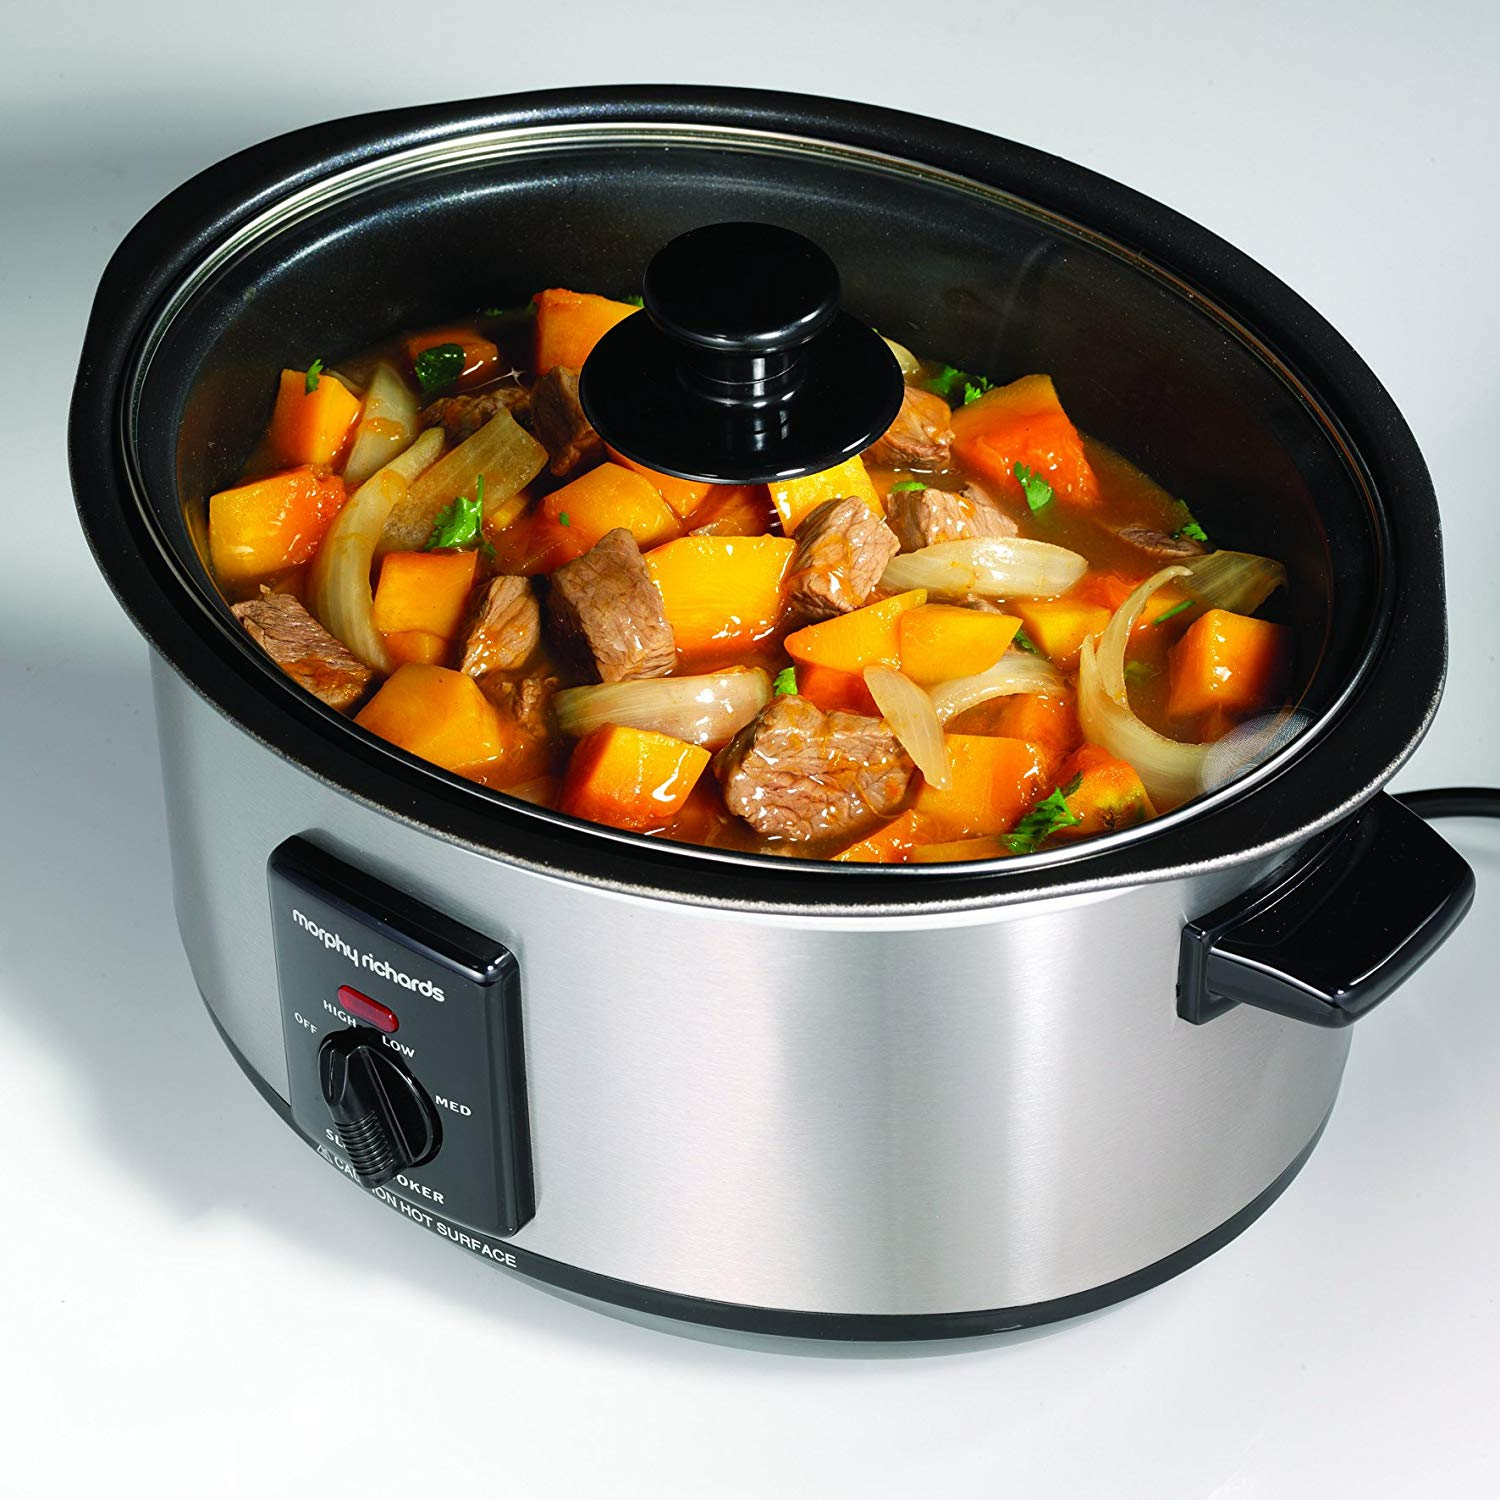 Morphy Richards Accents Sear and Stew Slow Cooker 3.5L